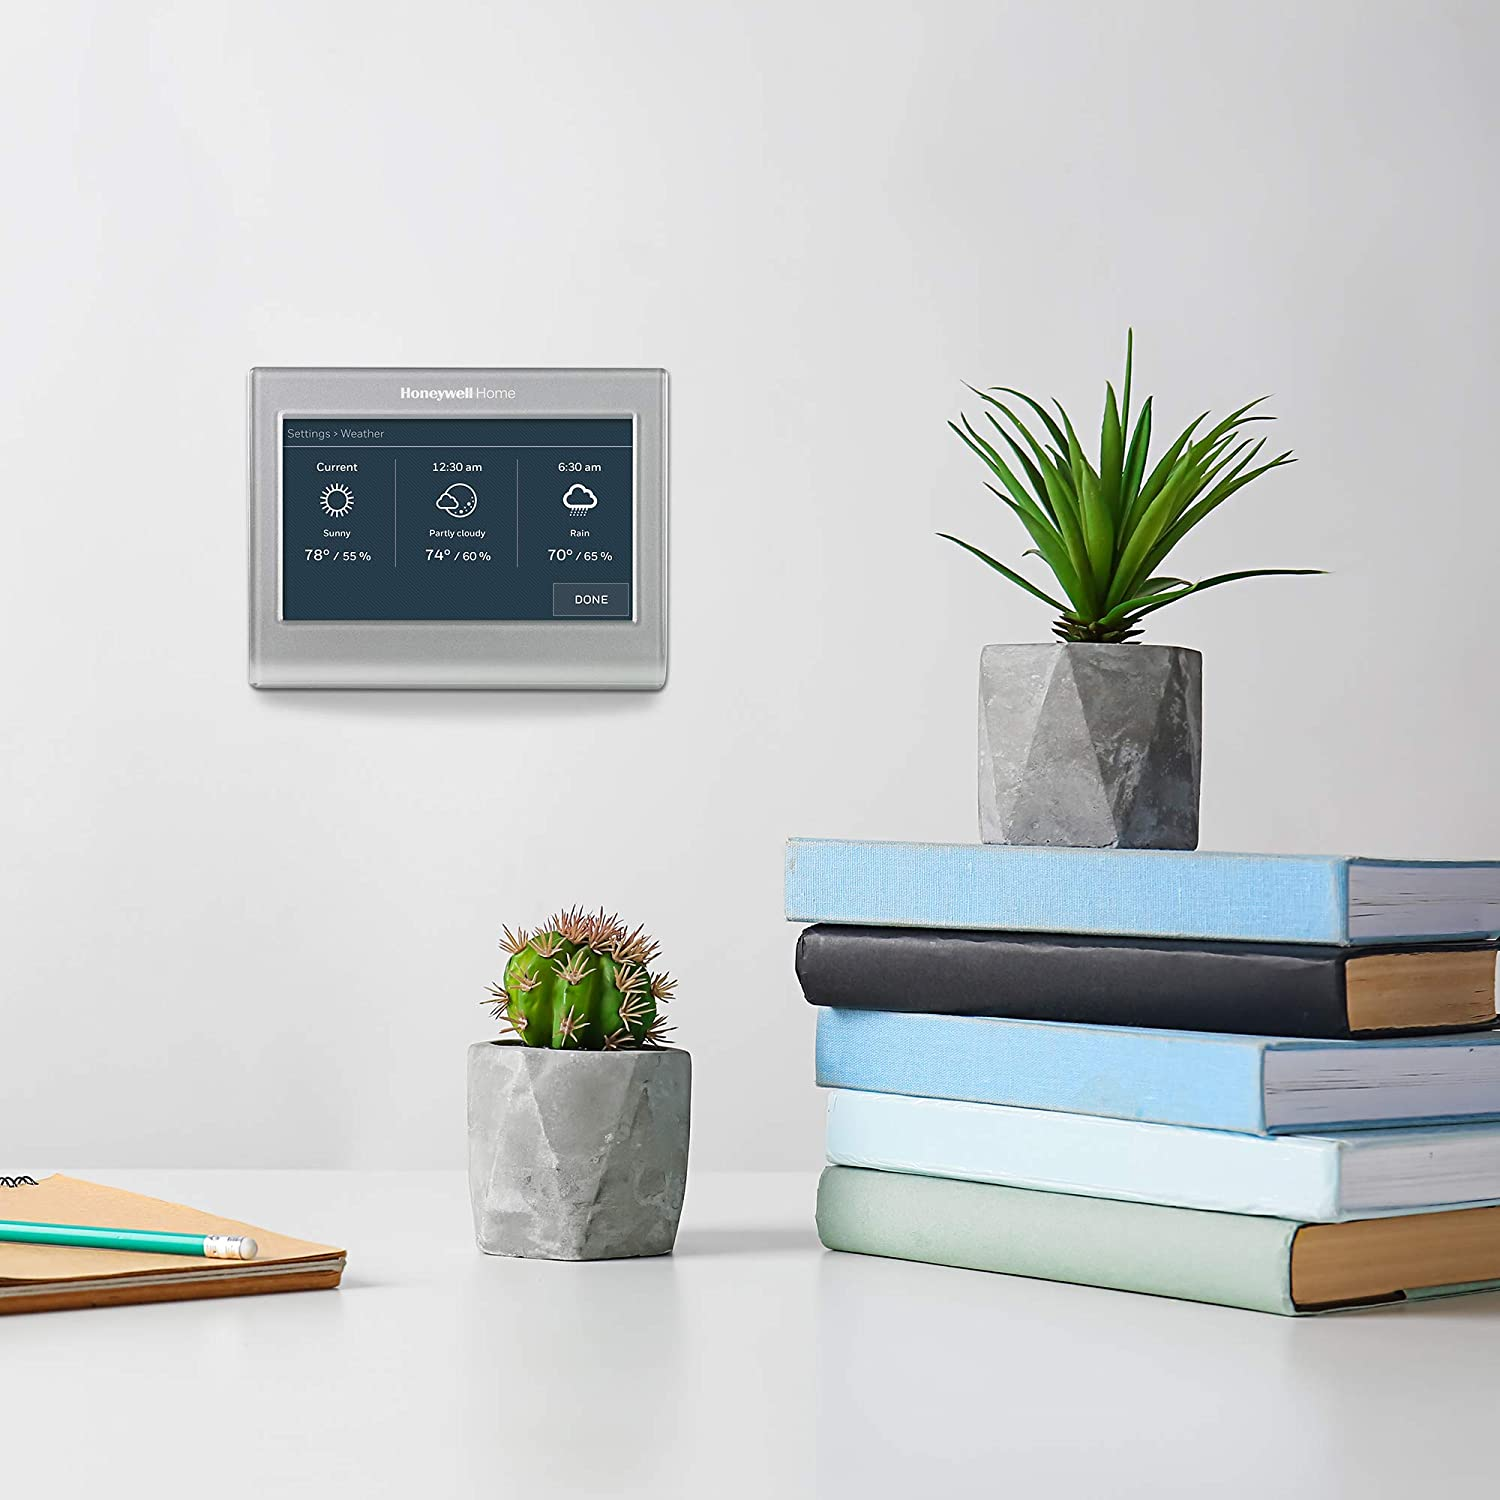 4 digital thermostats that will help you keep your home at a comfortable temperature